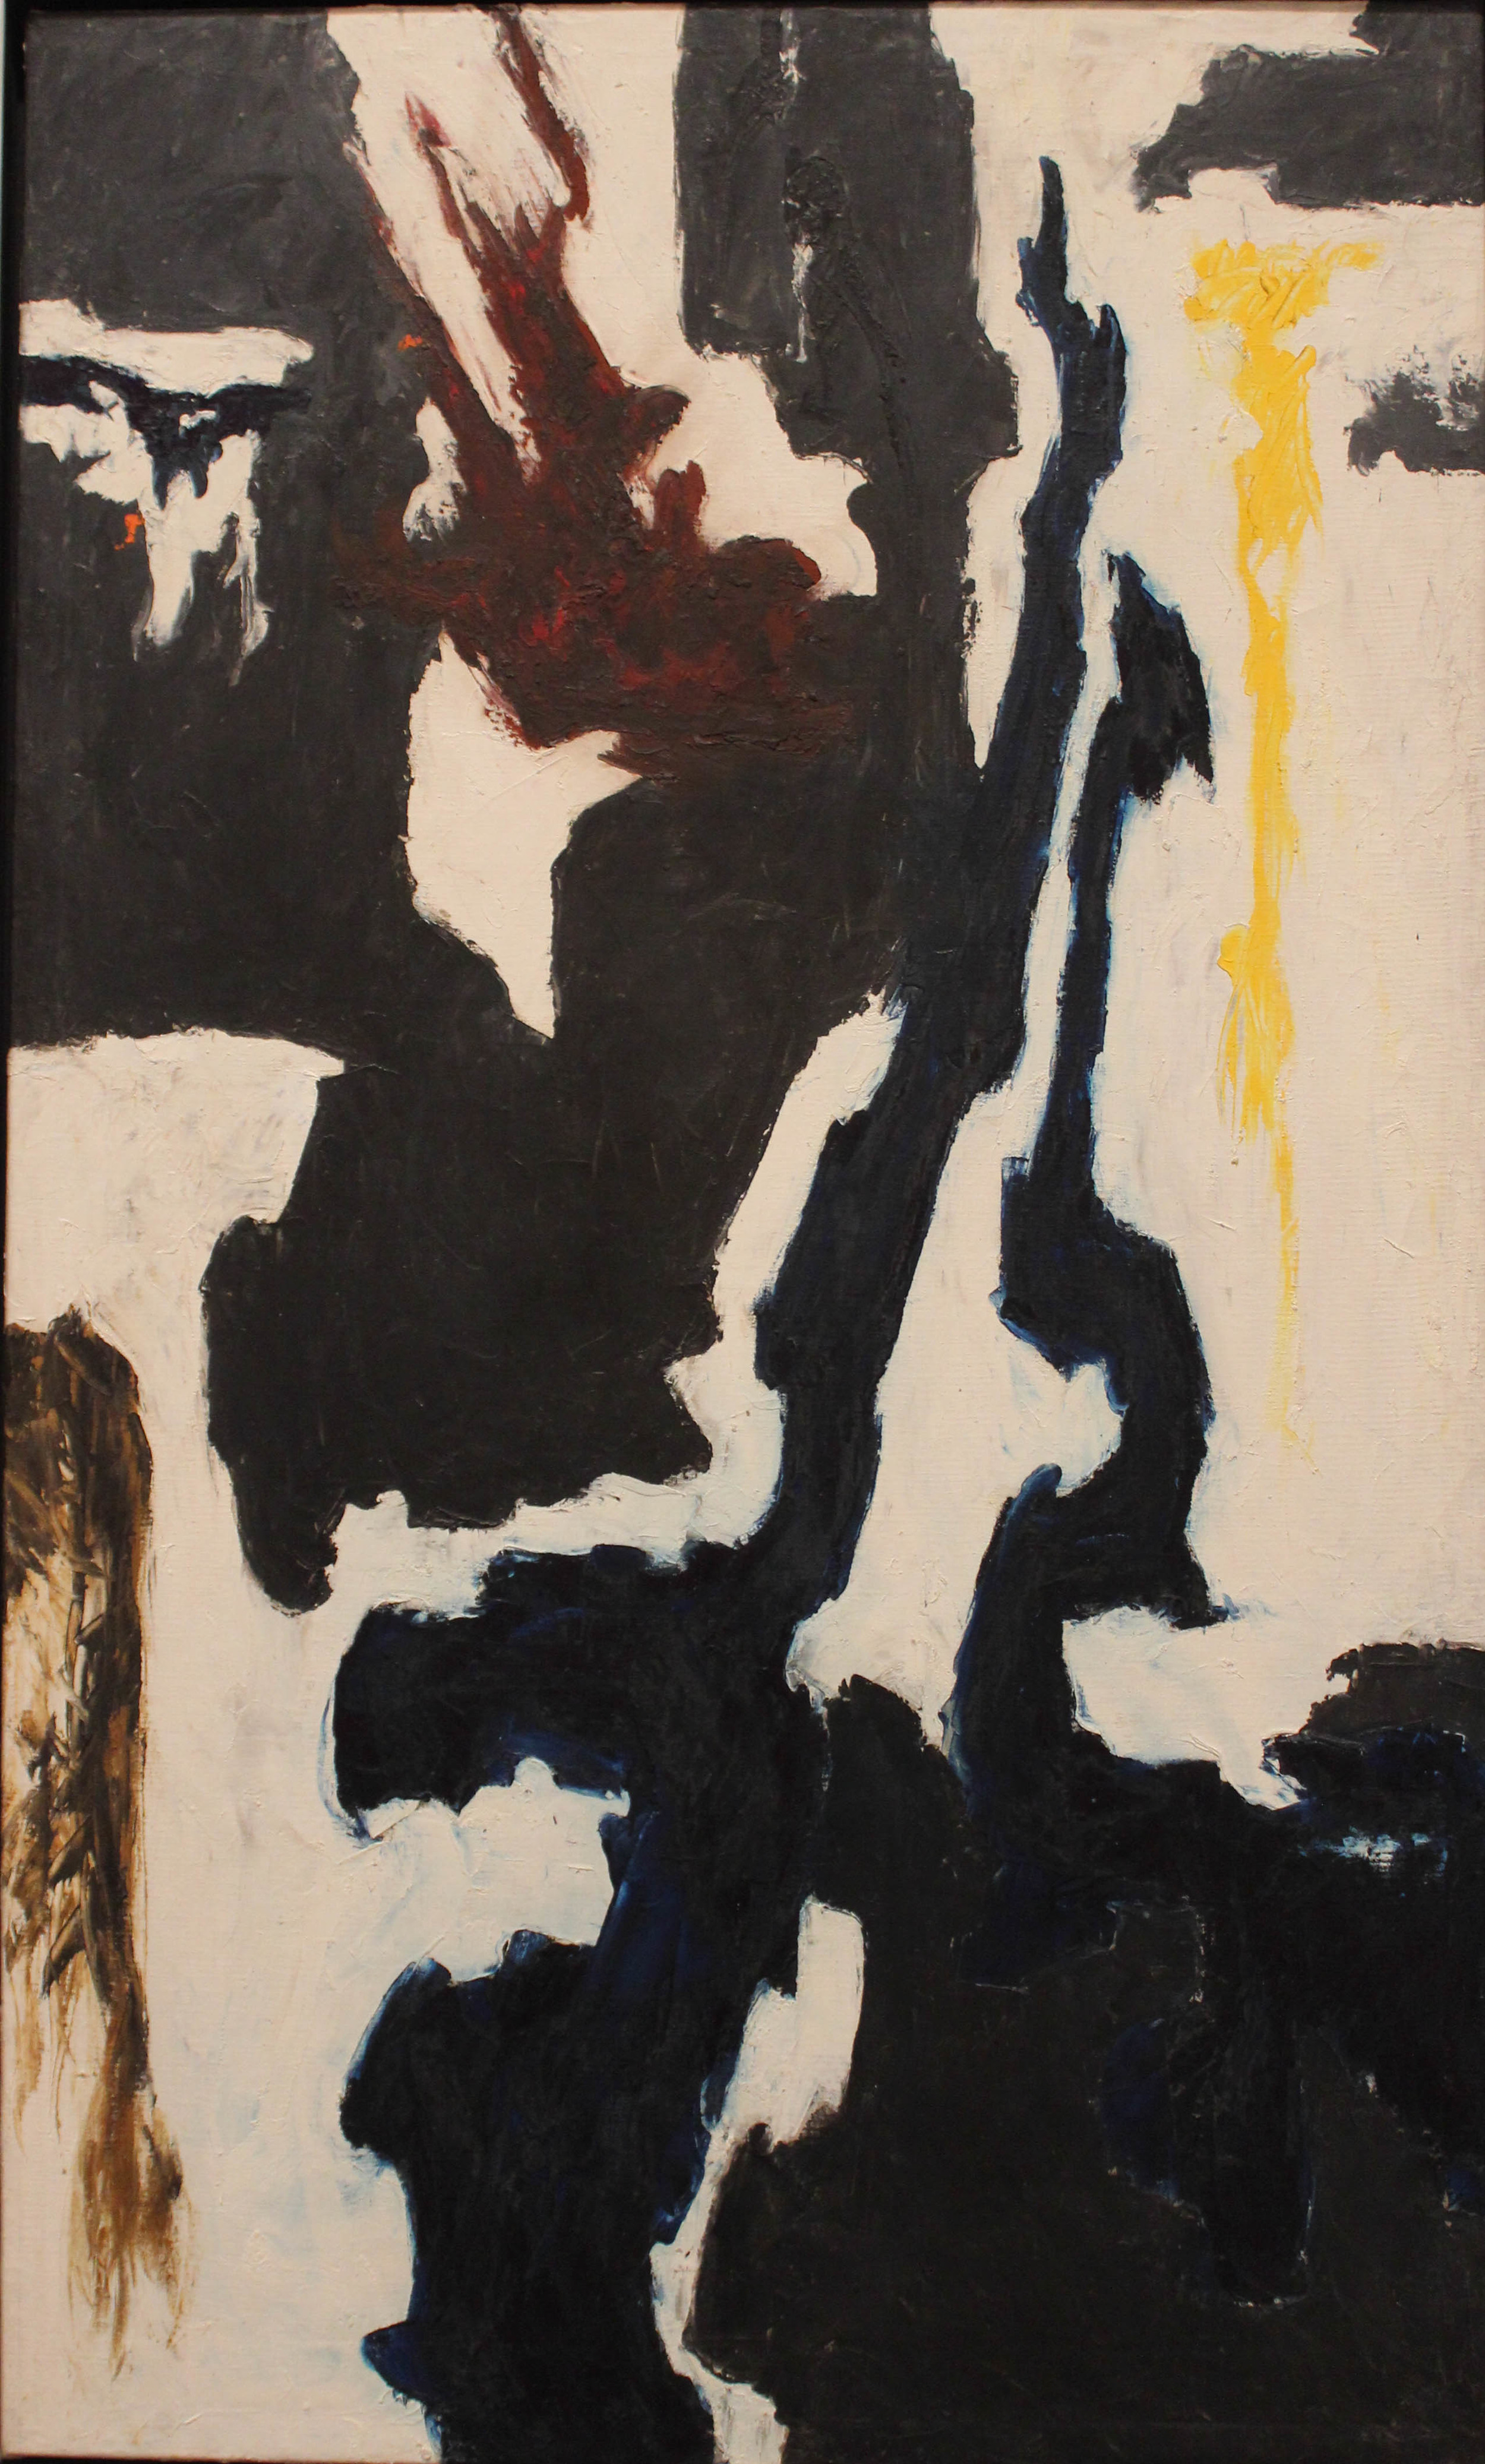 Clyfford Still: Untitled, 1946-47, on view at the Metropolitan Museum, NY.